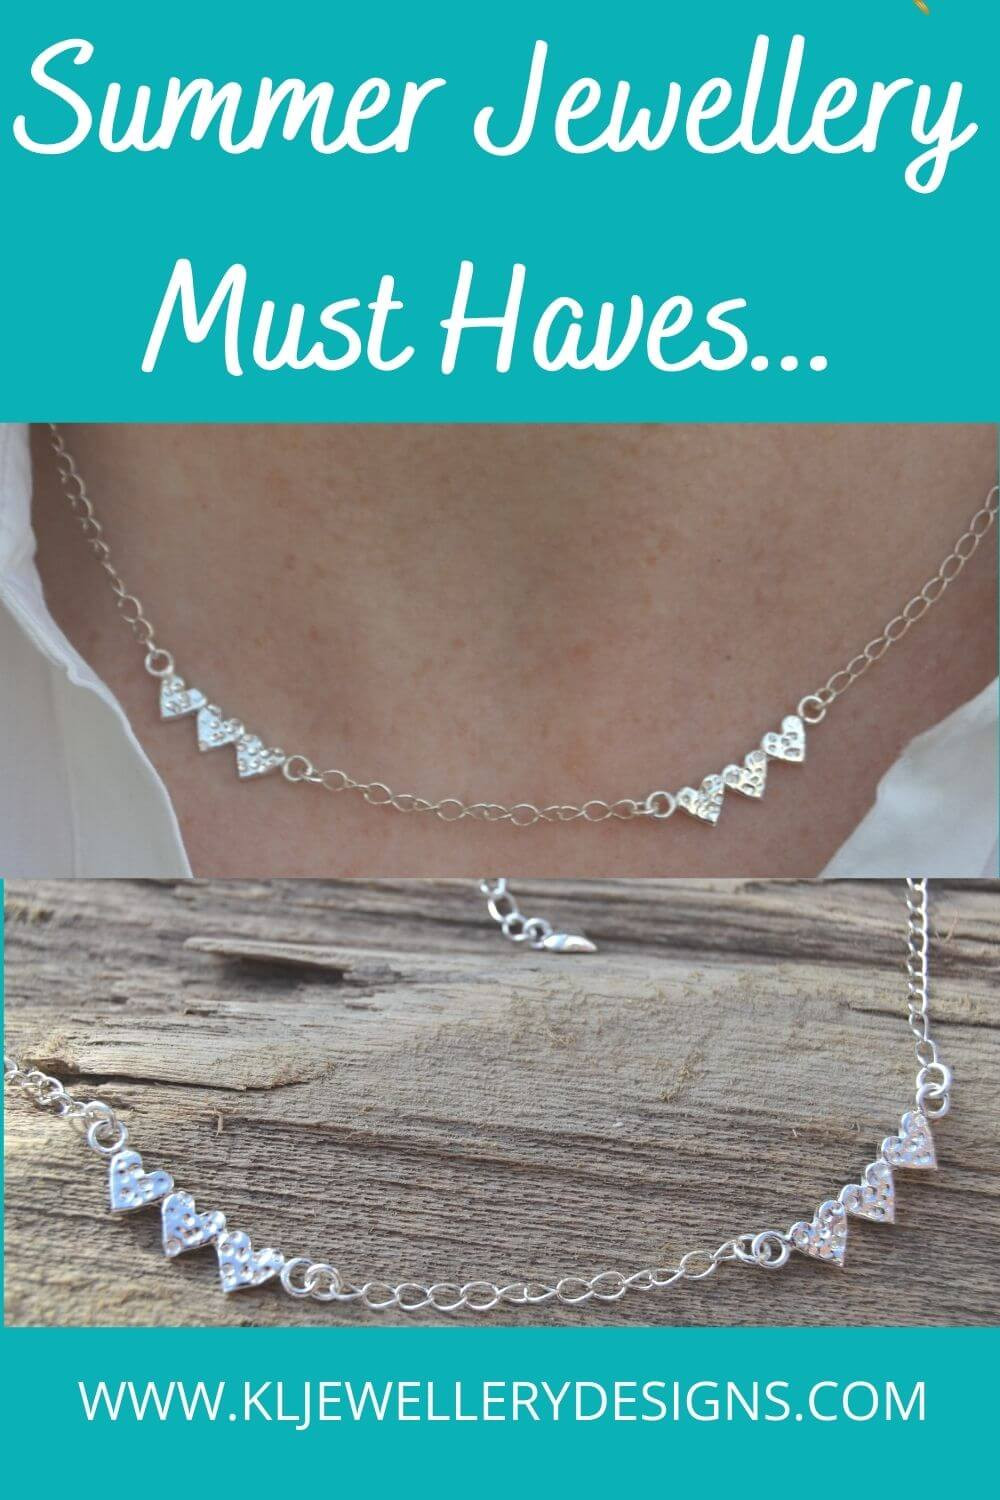 Handmade silver heart necklace perfect for summer!